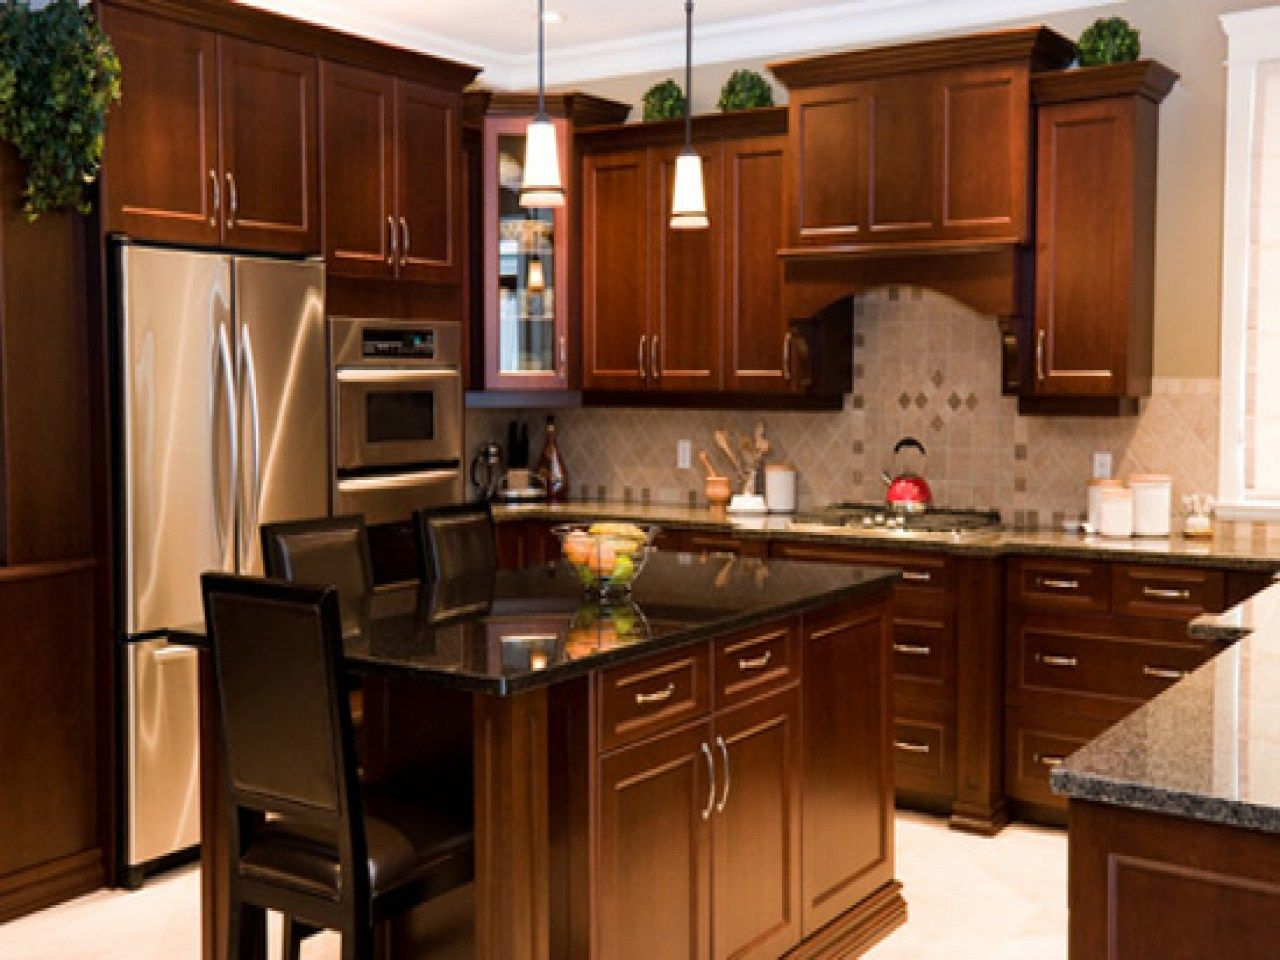 restain kitchen cabinets restaining kitchen cabinets wood from How ...